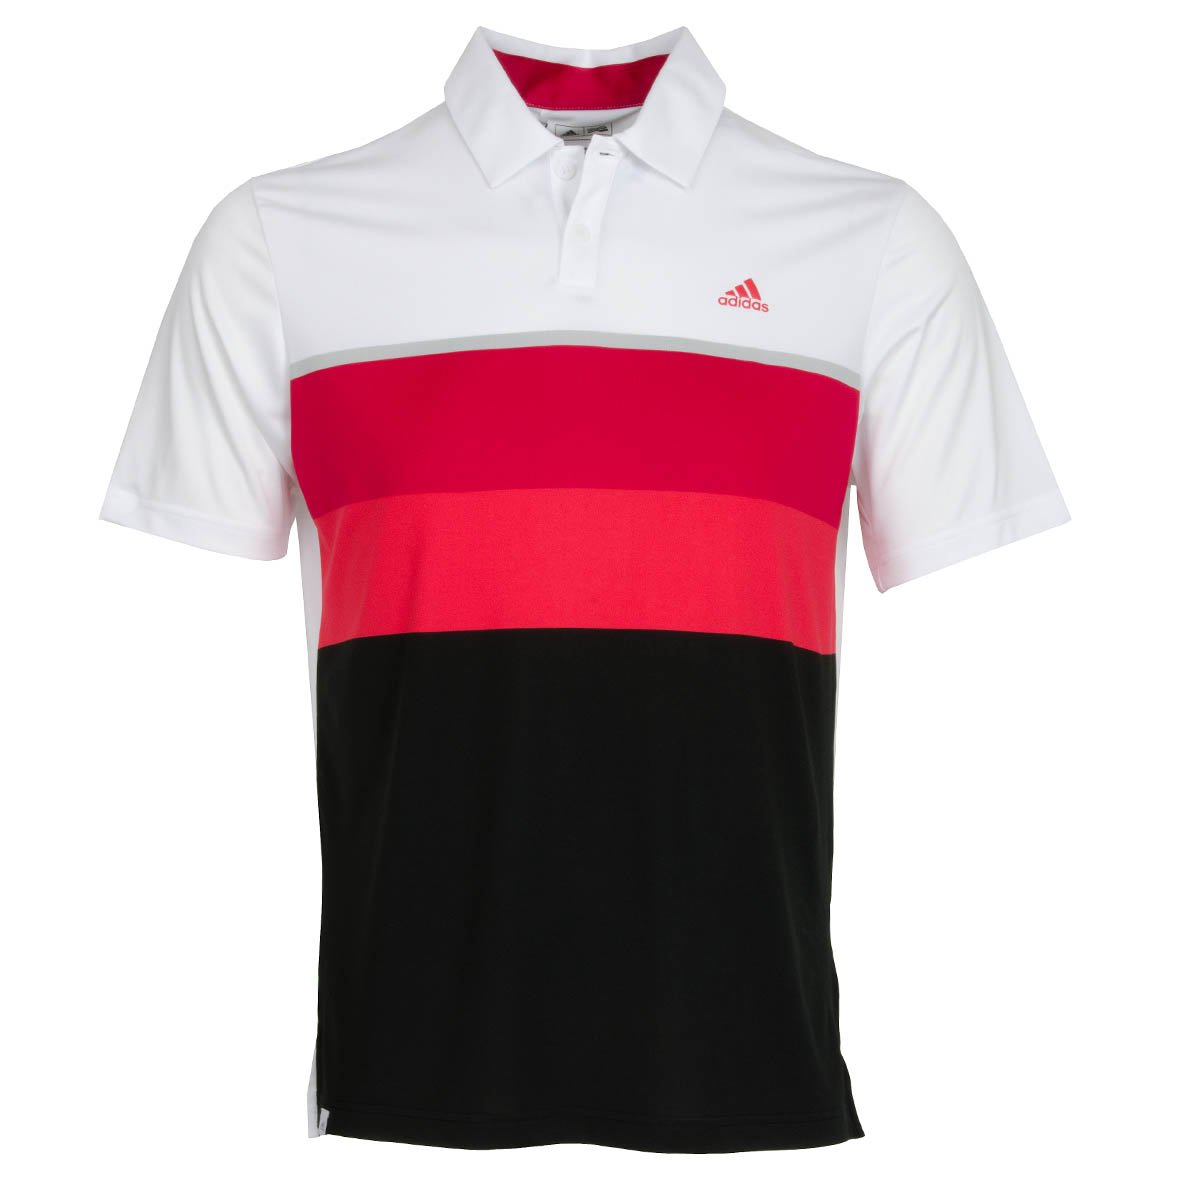 Adidas Climacool Engineered Striped Men's Polo Shirt White